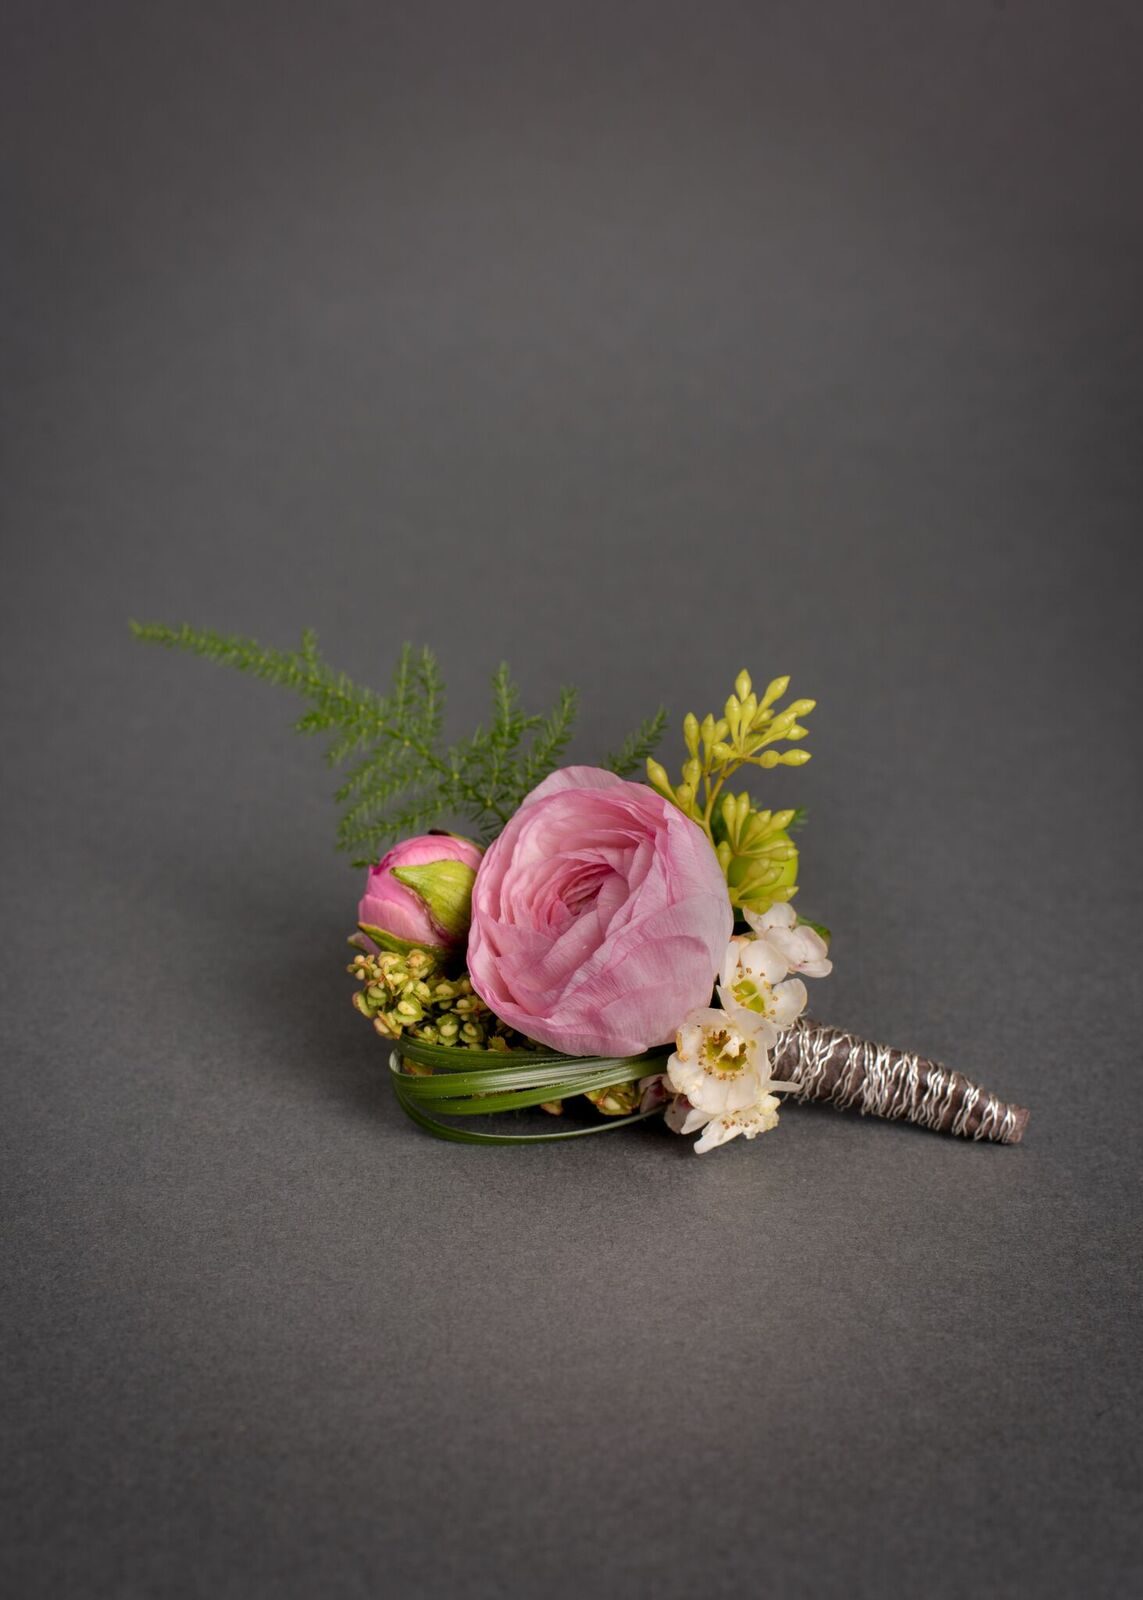 Fresh Floral Boutonniere with Magnetic Aid for Easy Placement